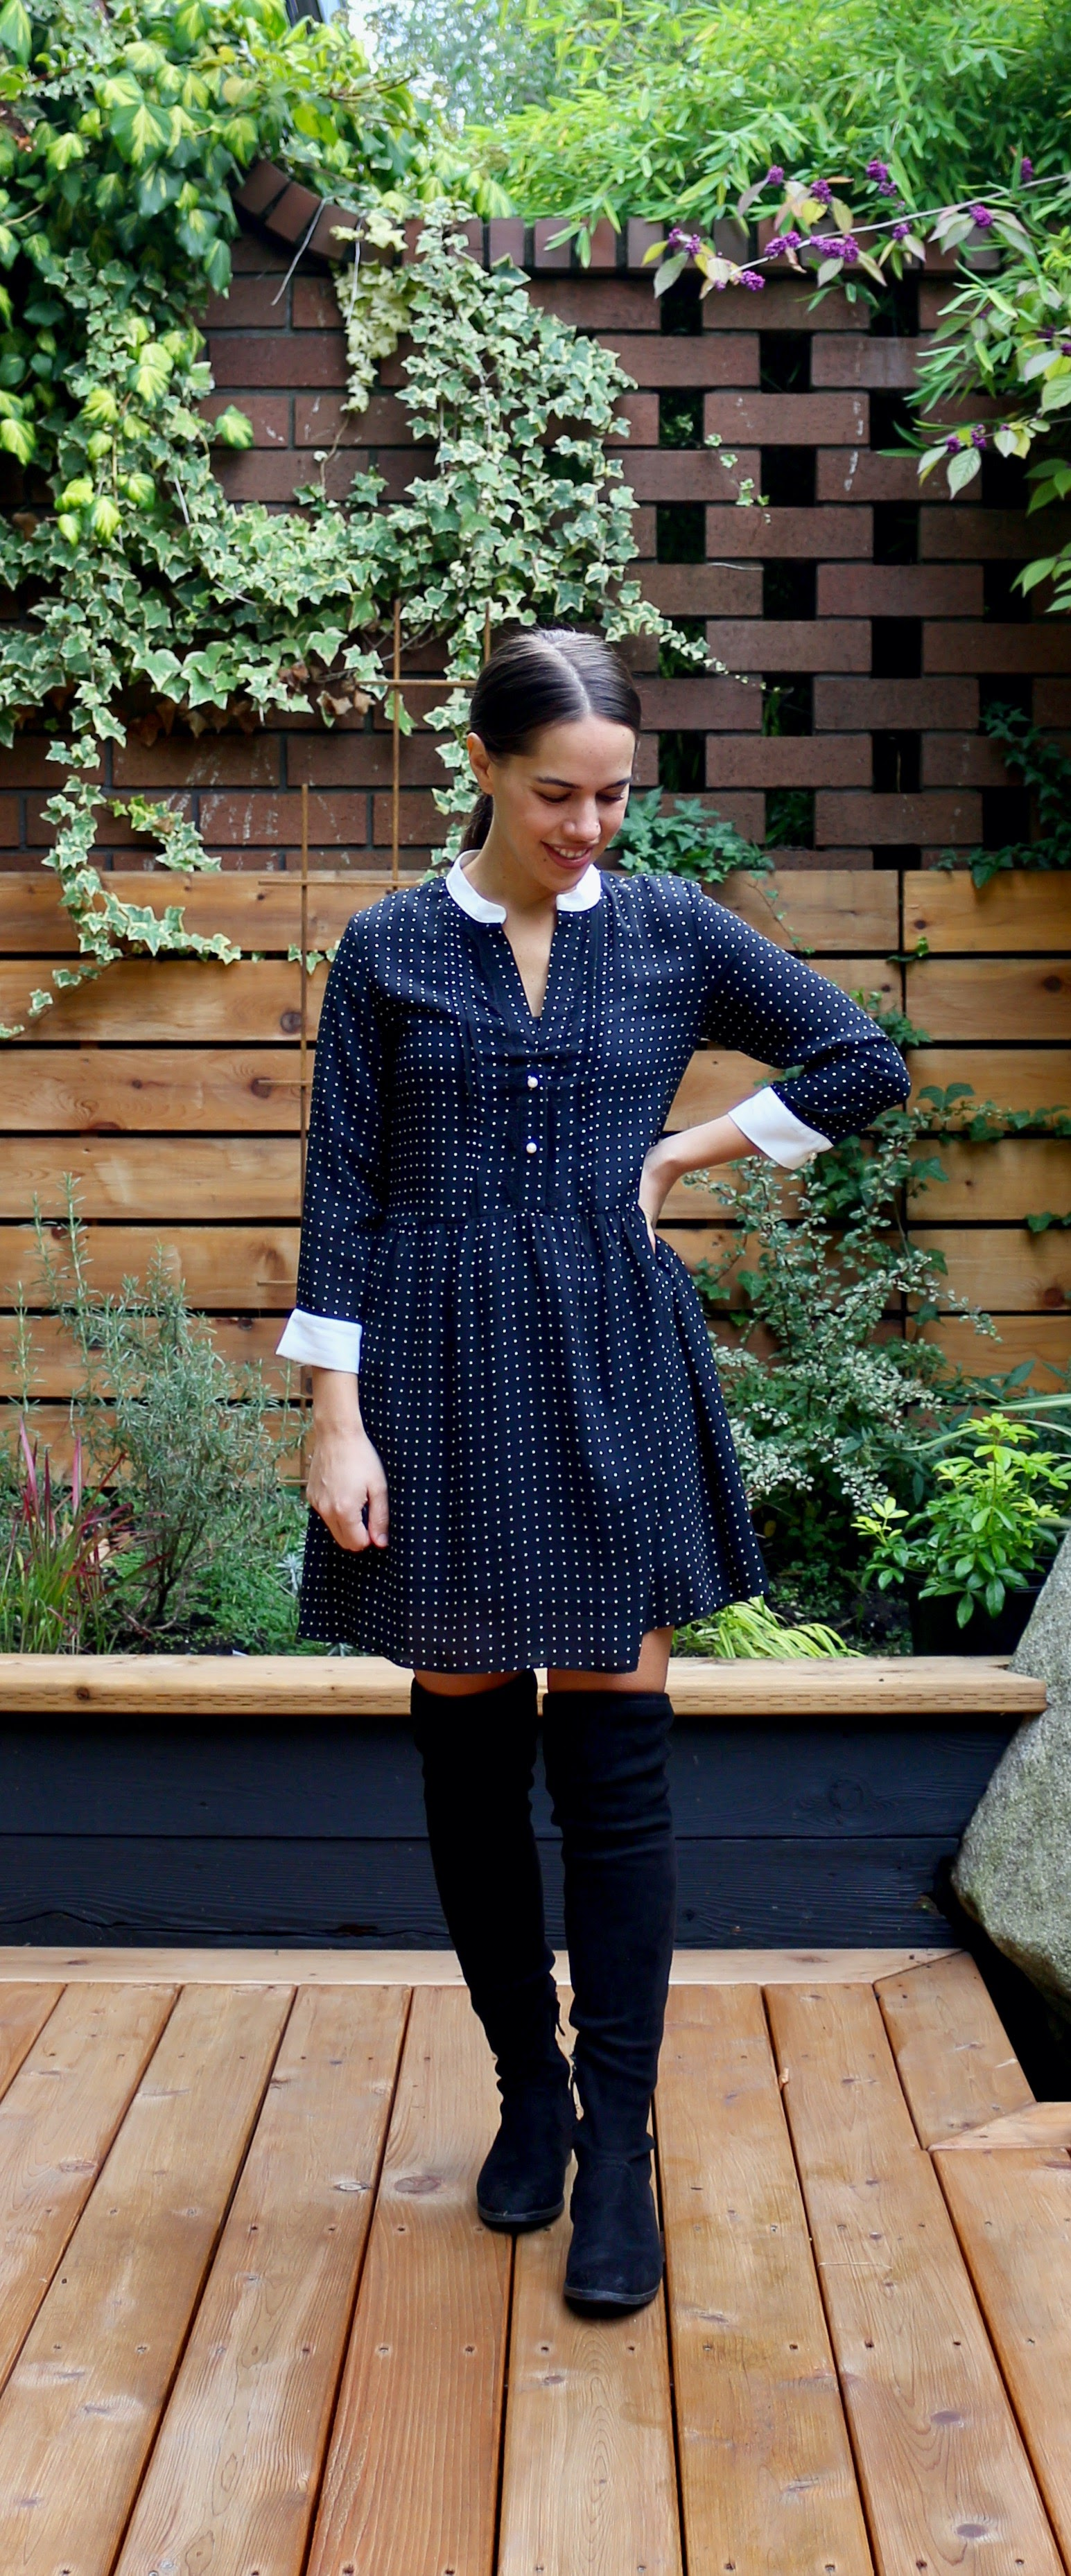 Jules in Flats - Polka Dot Swing Mini Dress with OTK Boots (Business Casual Workwear on a Budget)